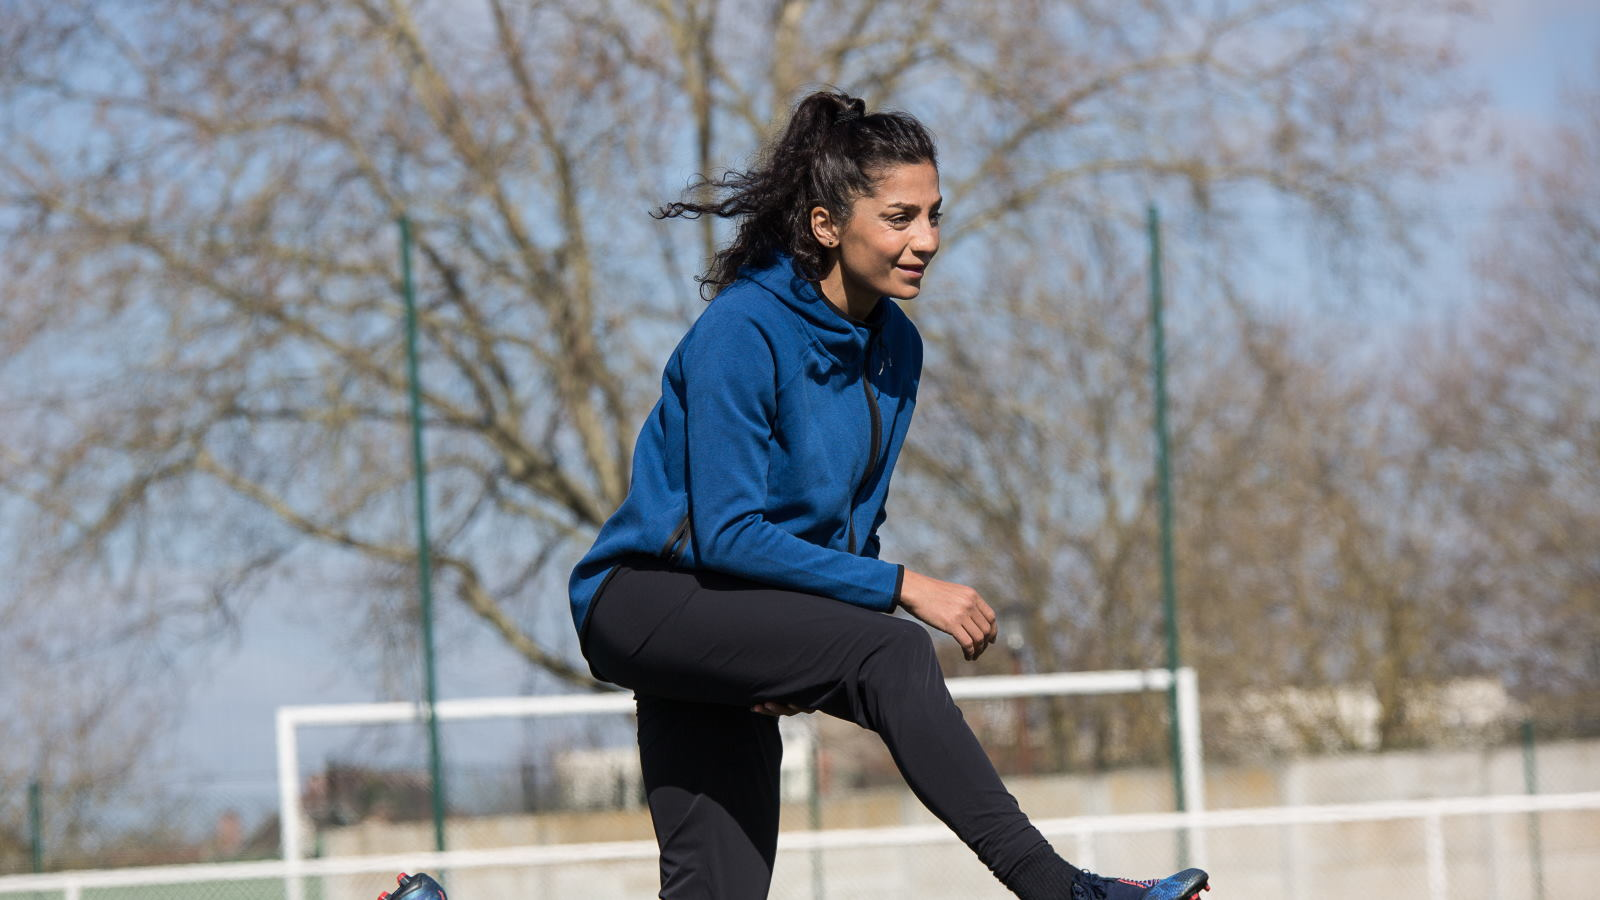 Nadia Nadim in training